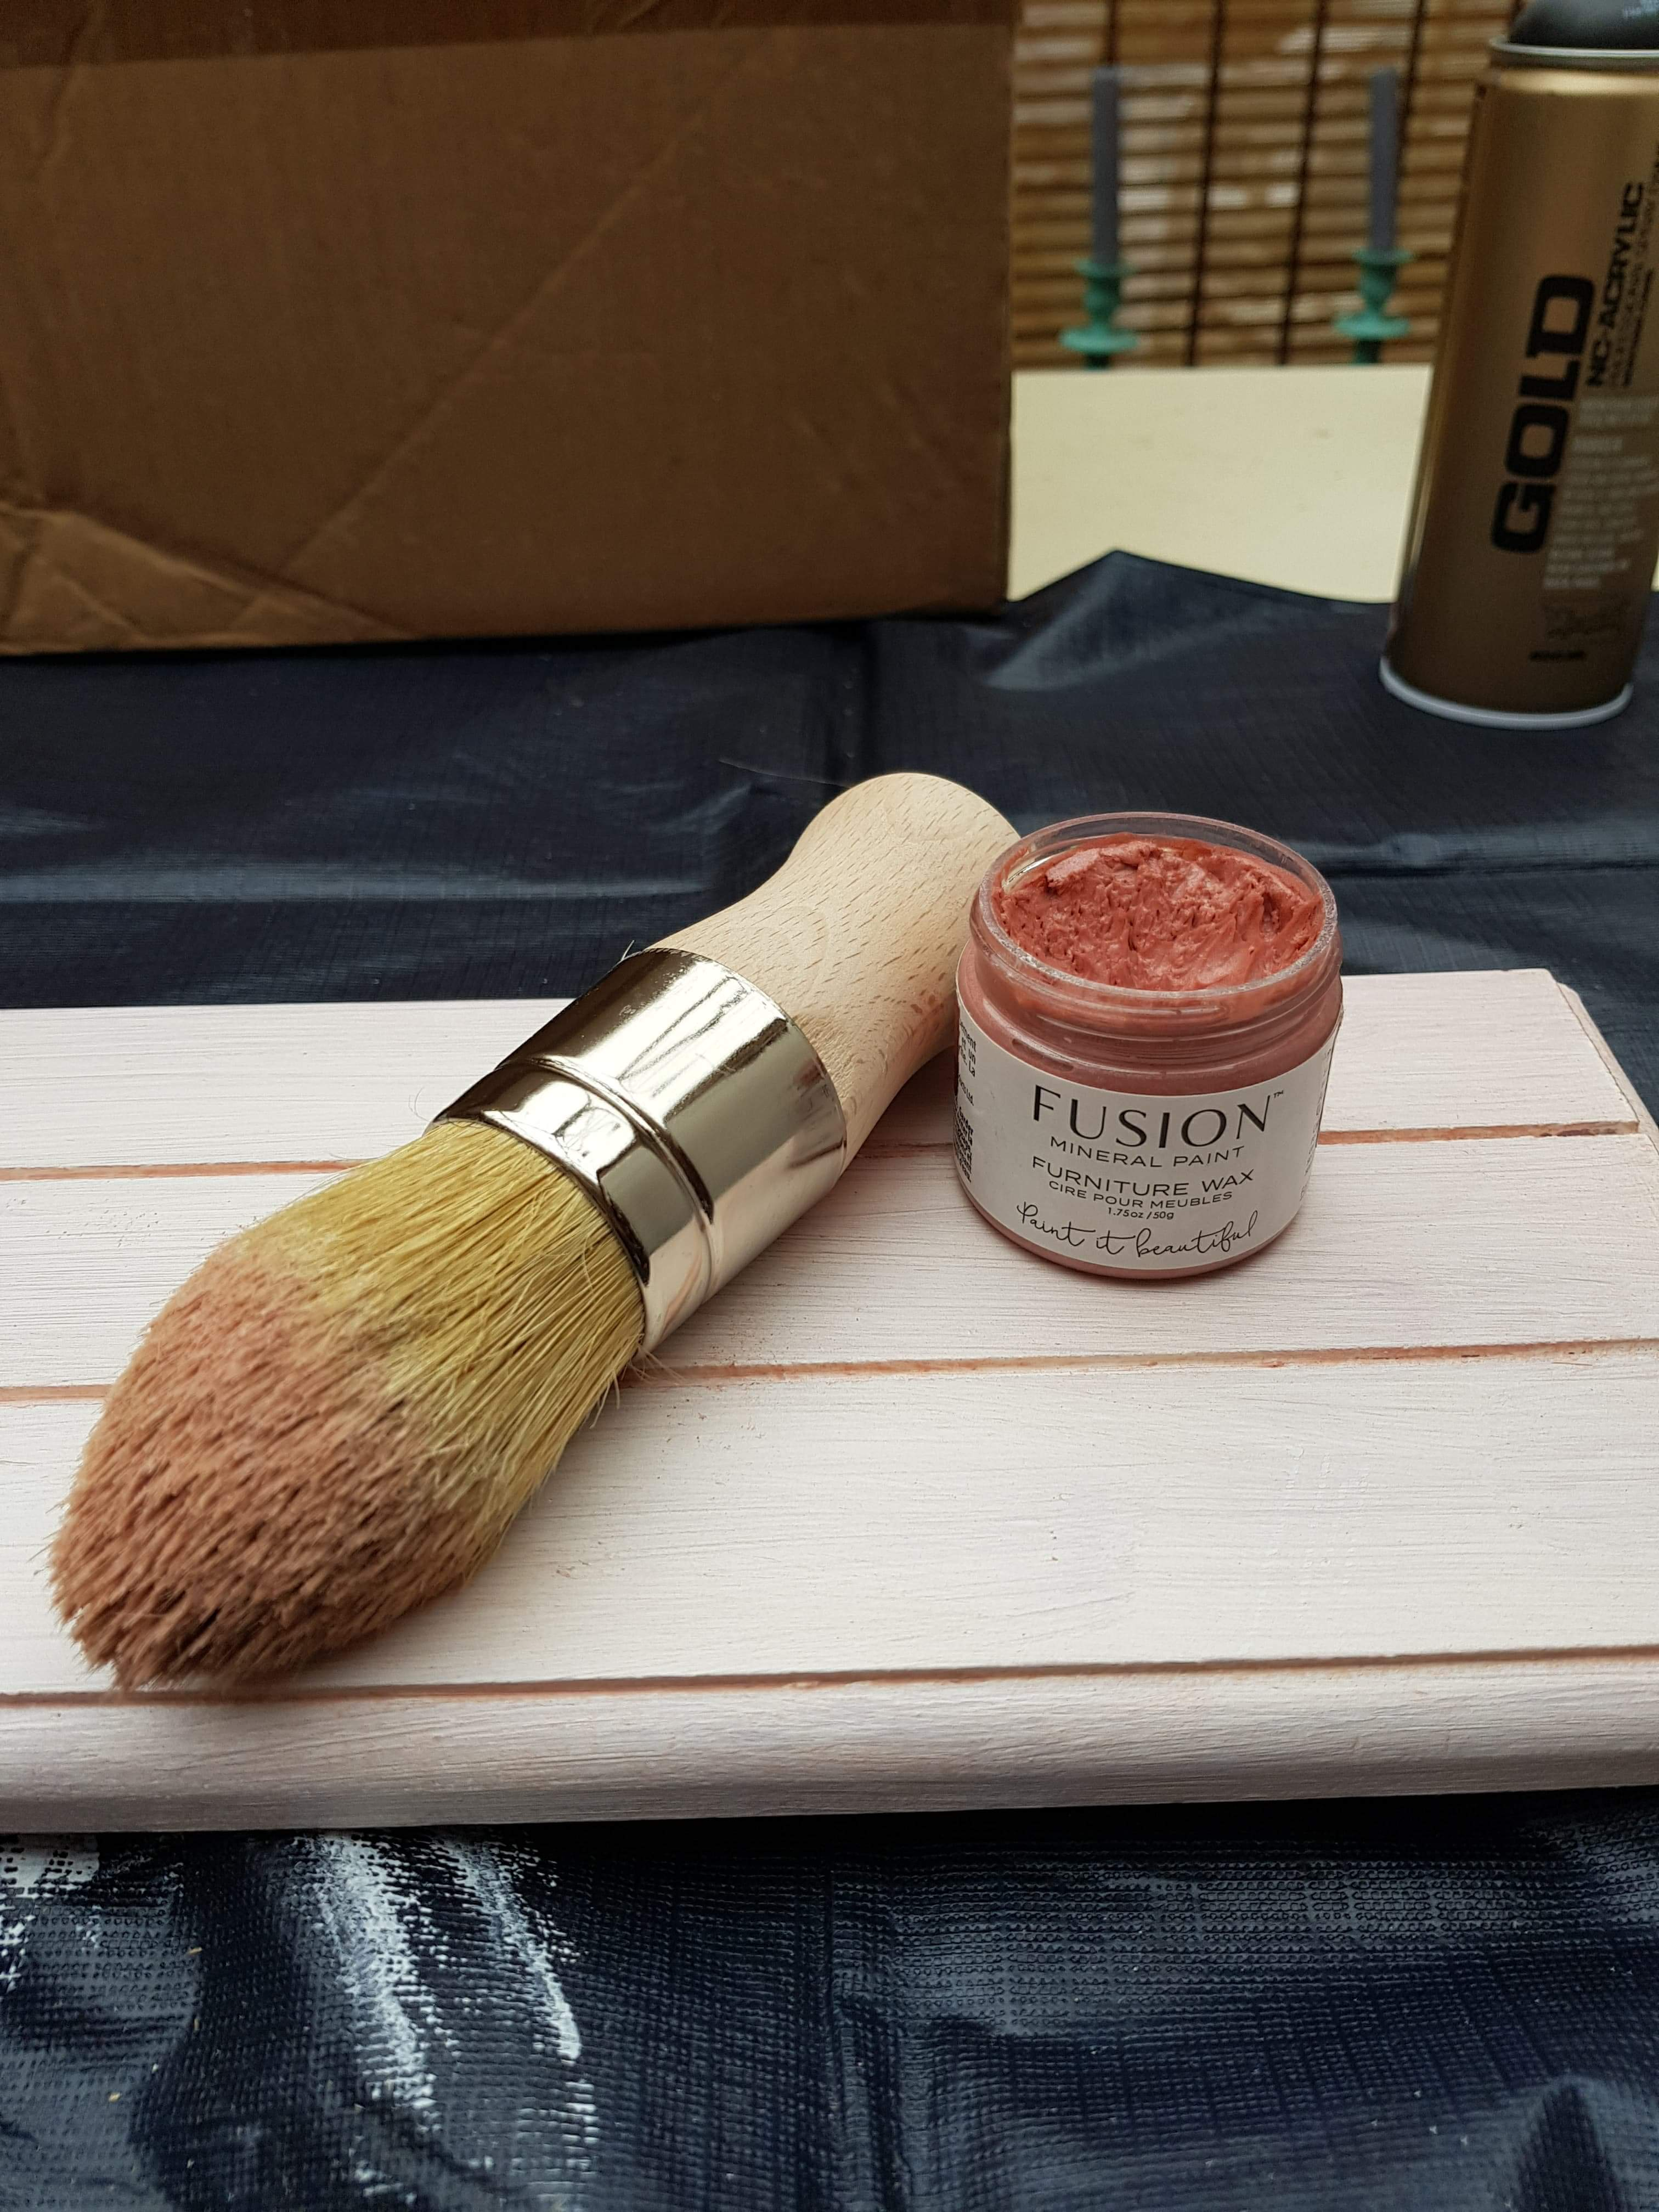 Fusion Mineral Paint Furniture Wax Pink Gold